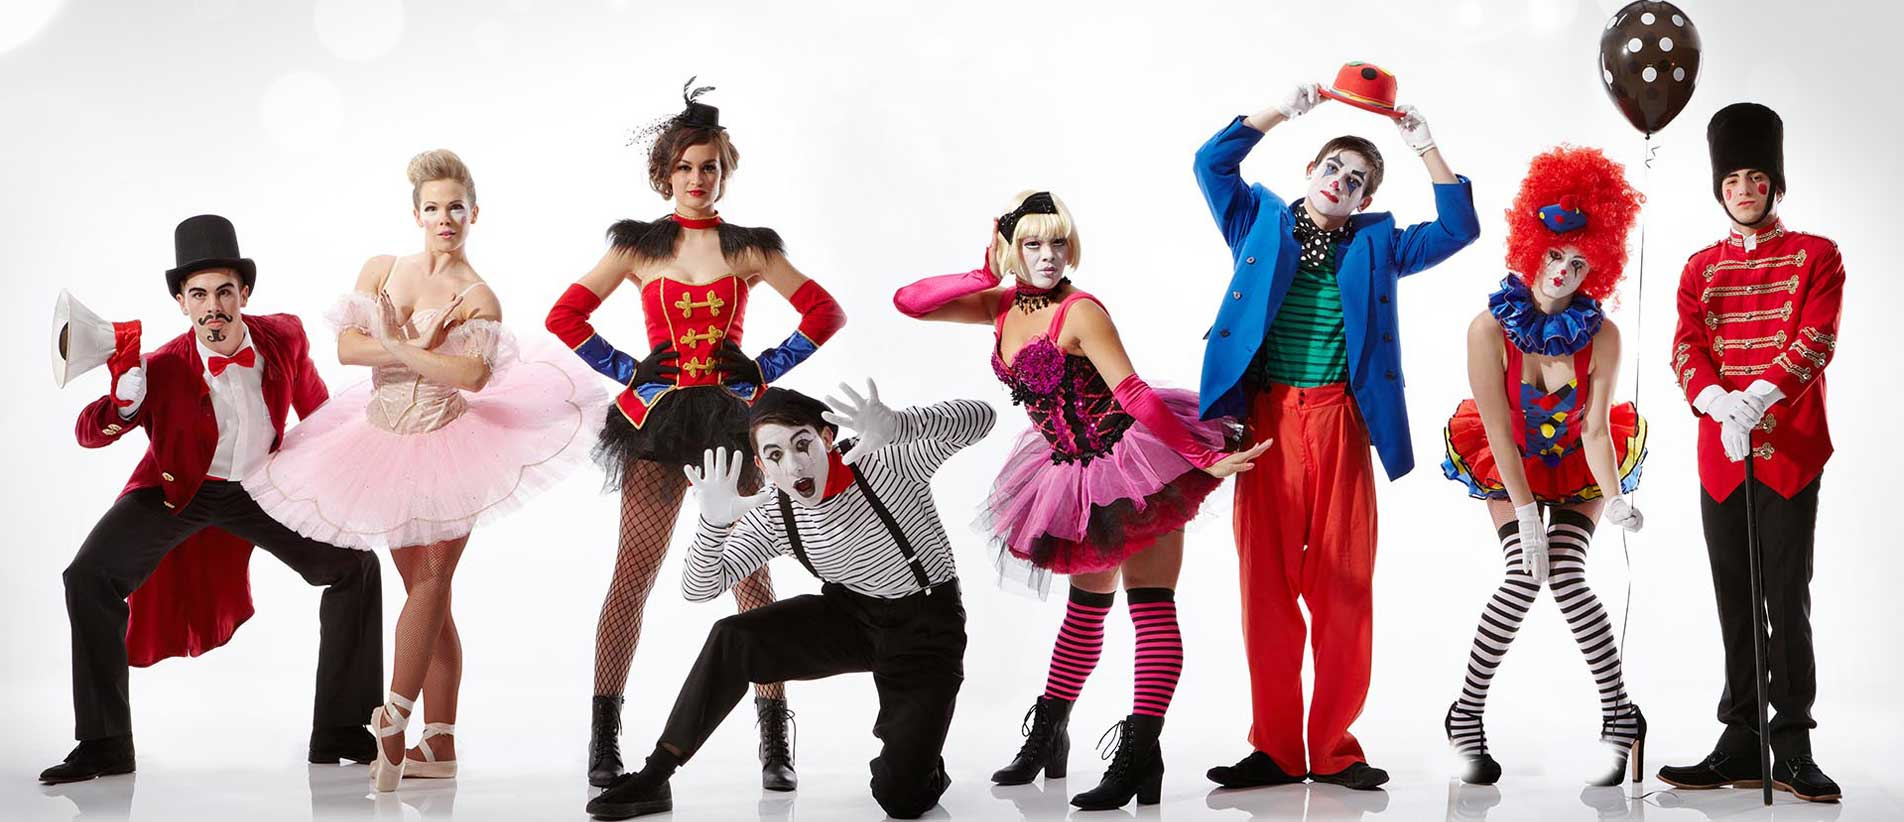 theme-cirque-cmj-france-univers-spectacles